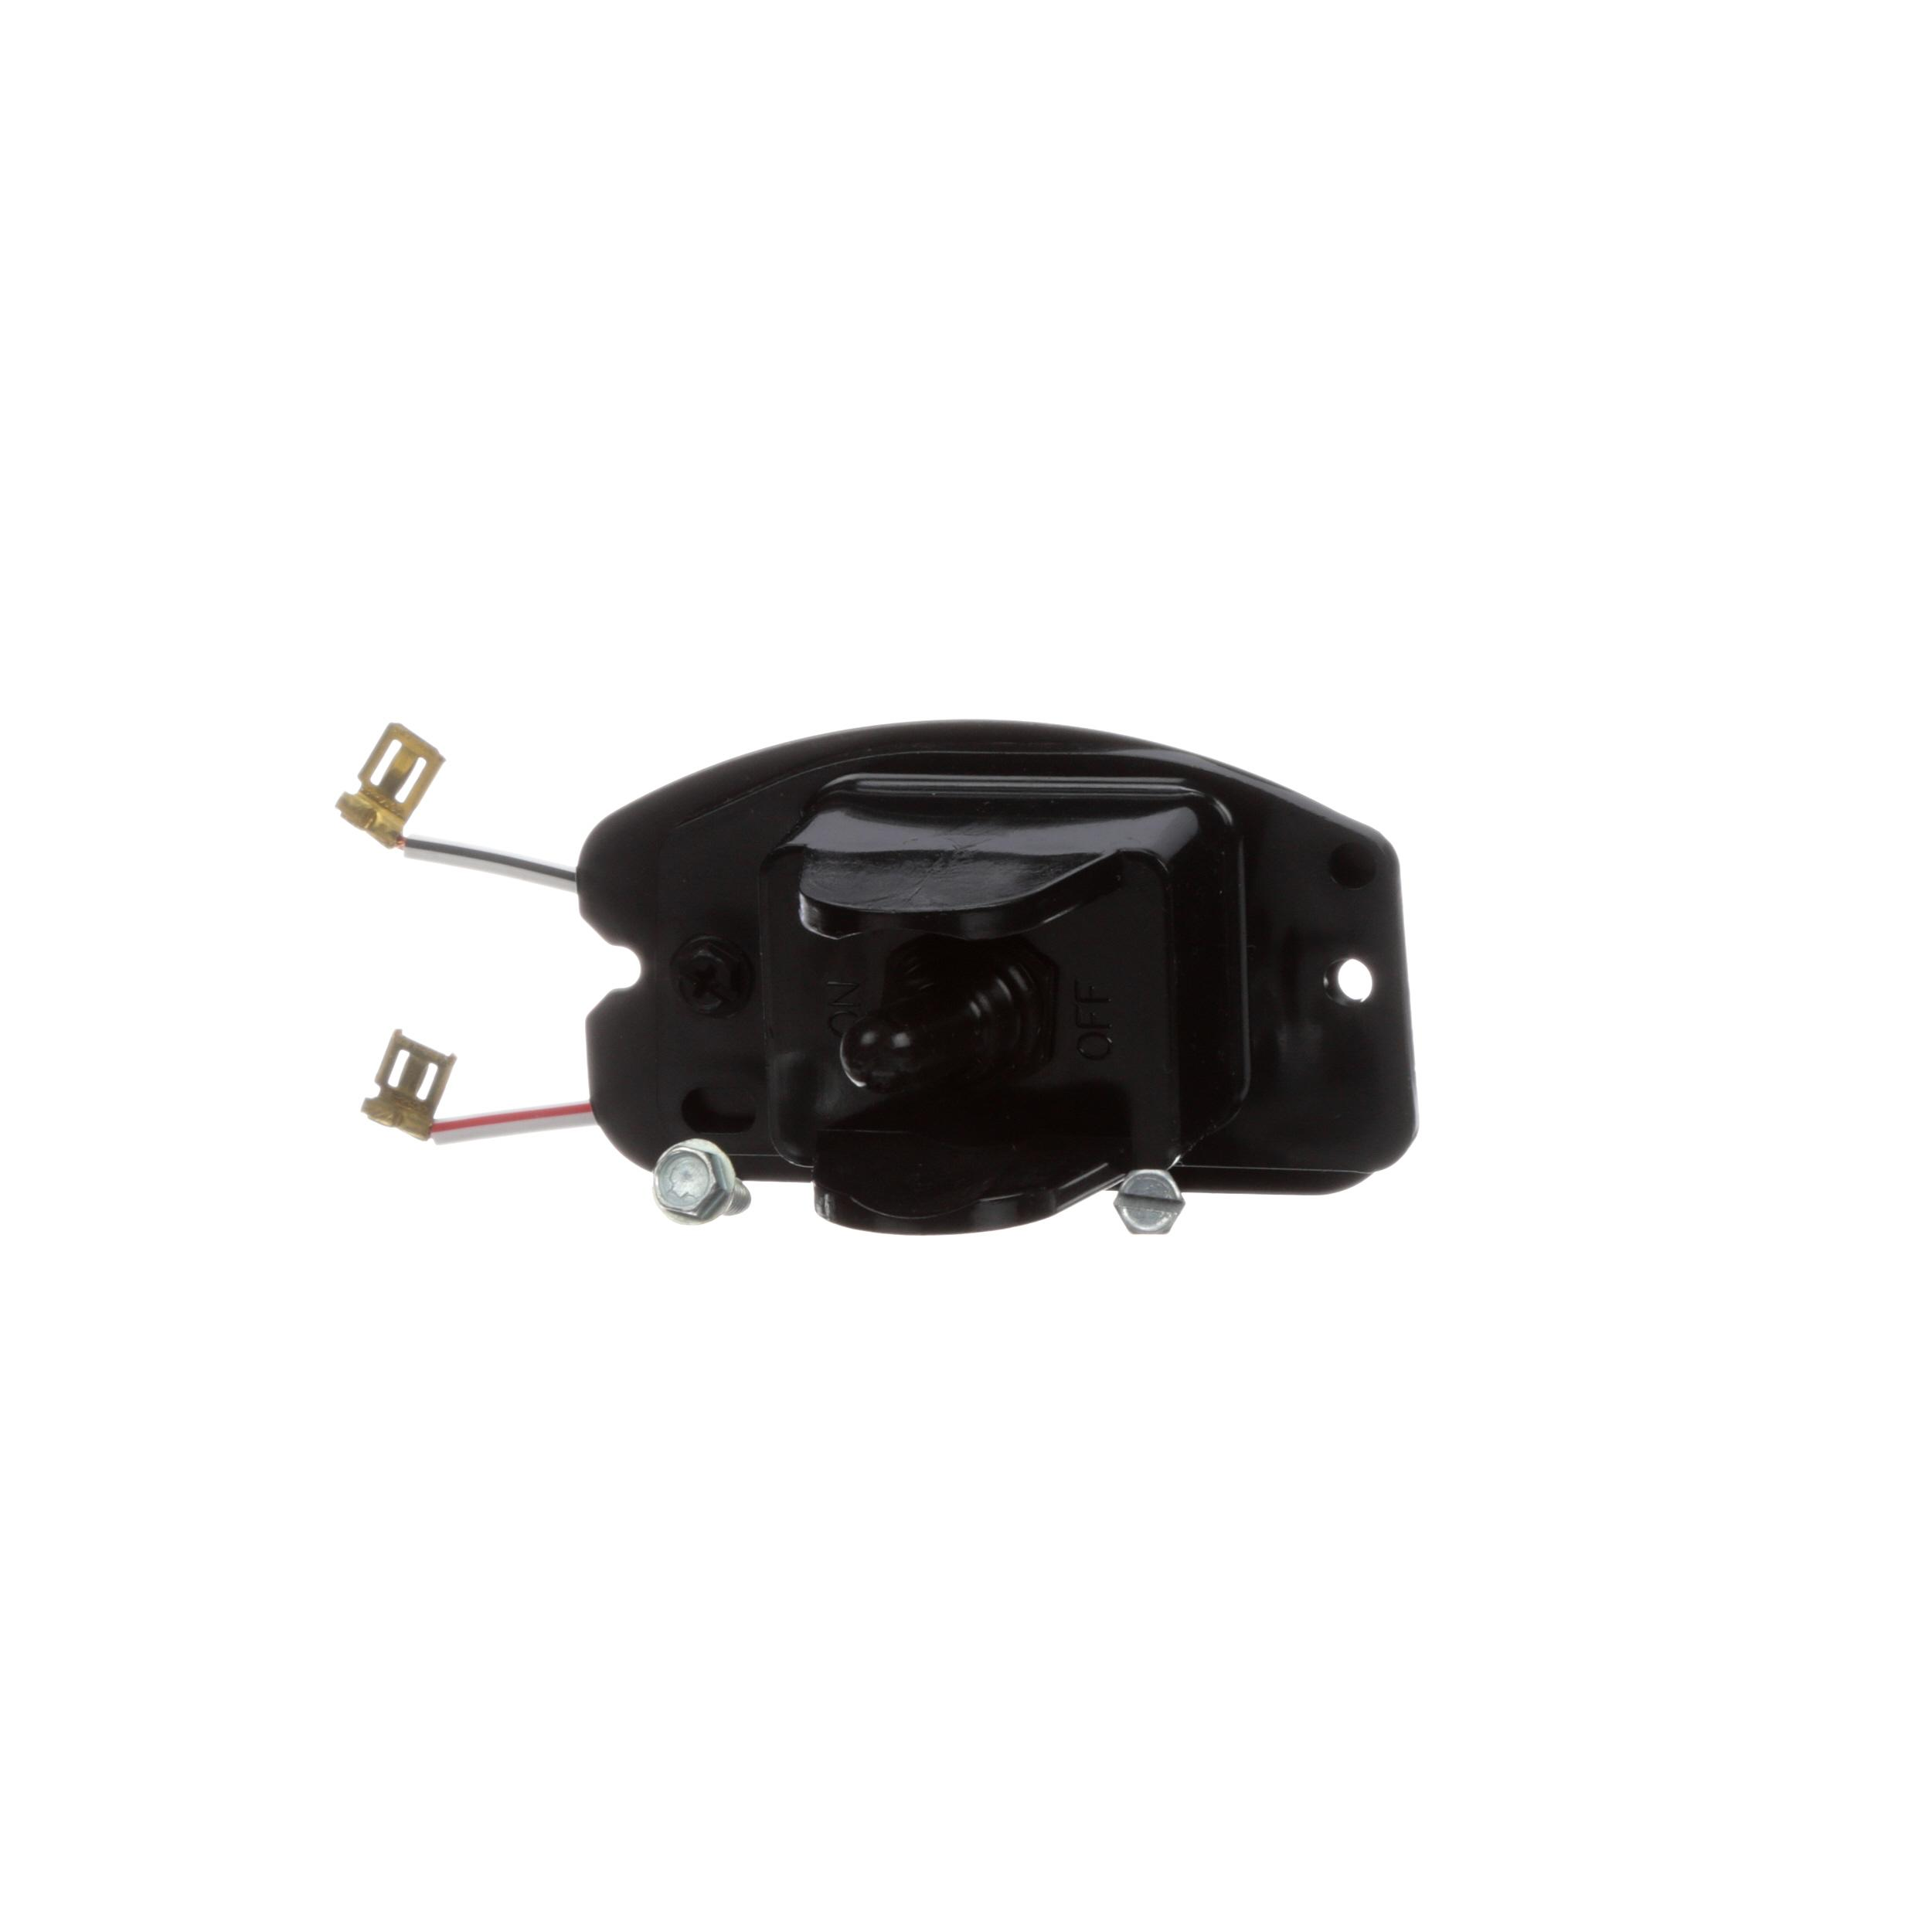 FRONTLINE CADDY PUMP SWITCH KIT